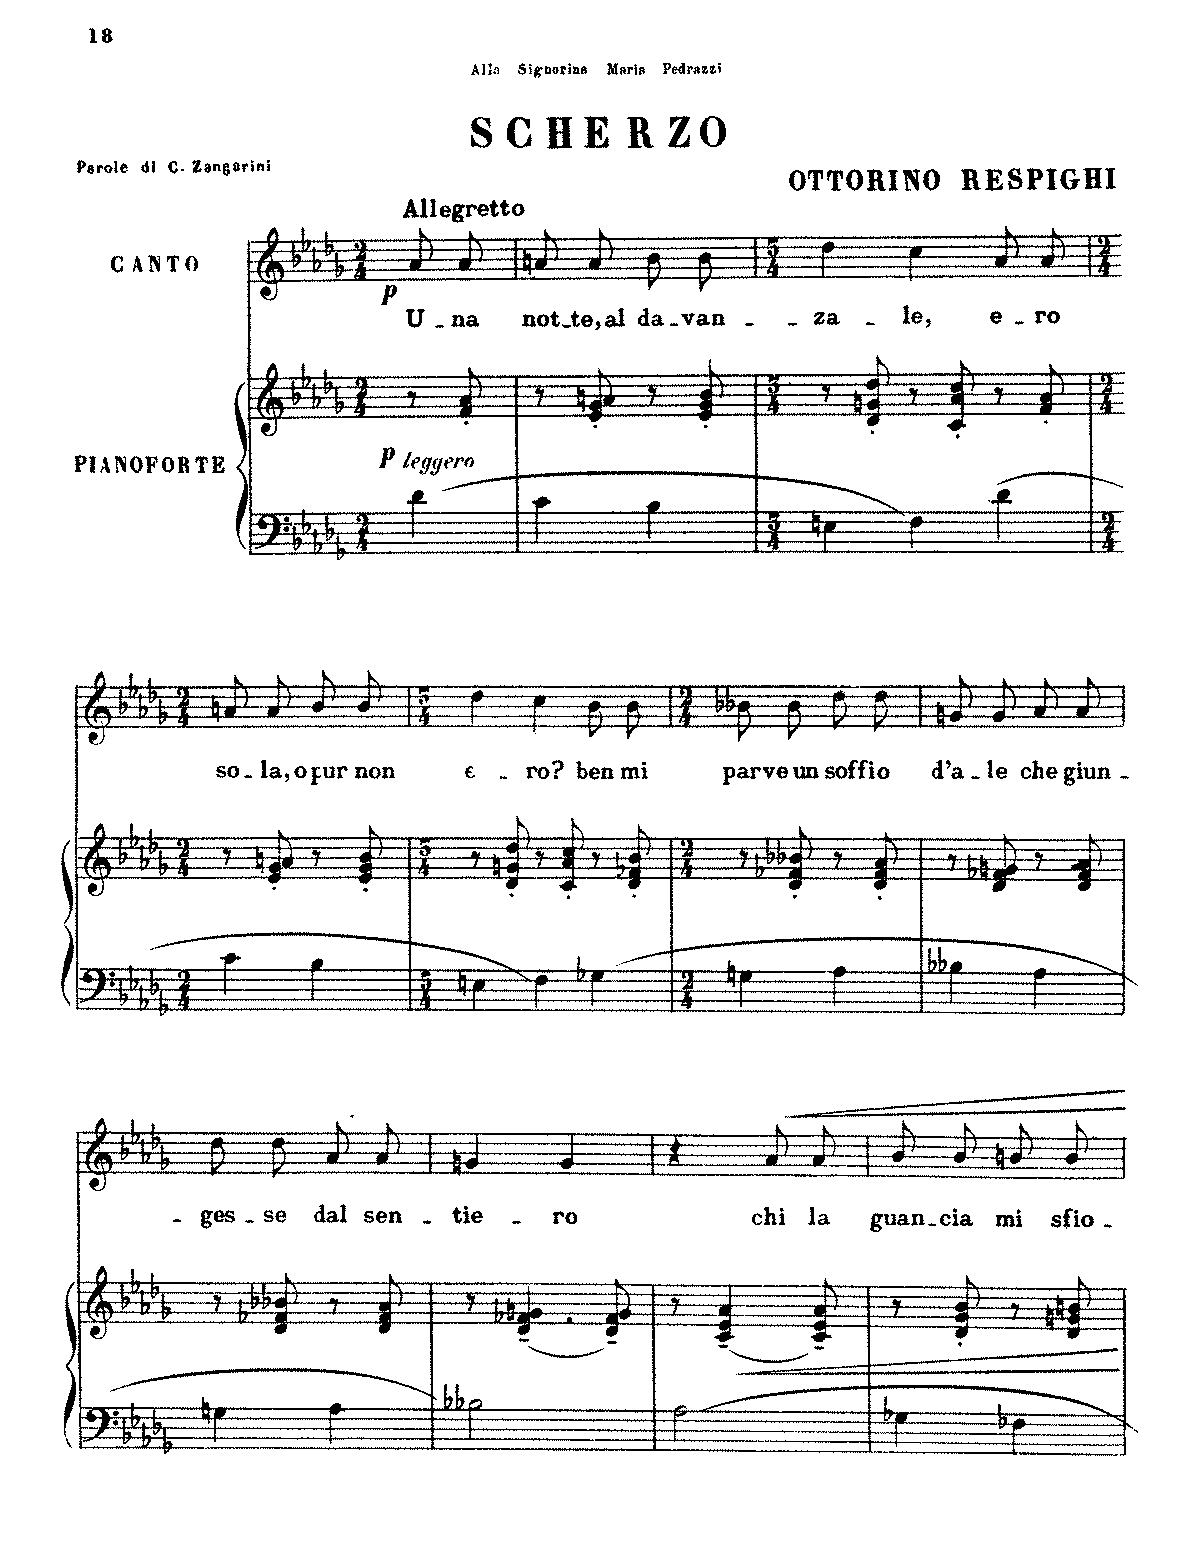 PMLP199198-Respighi - Scherzo (voice and piano).pdf